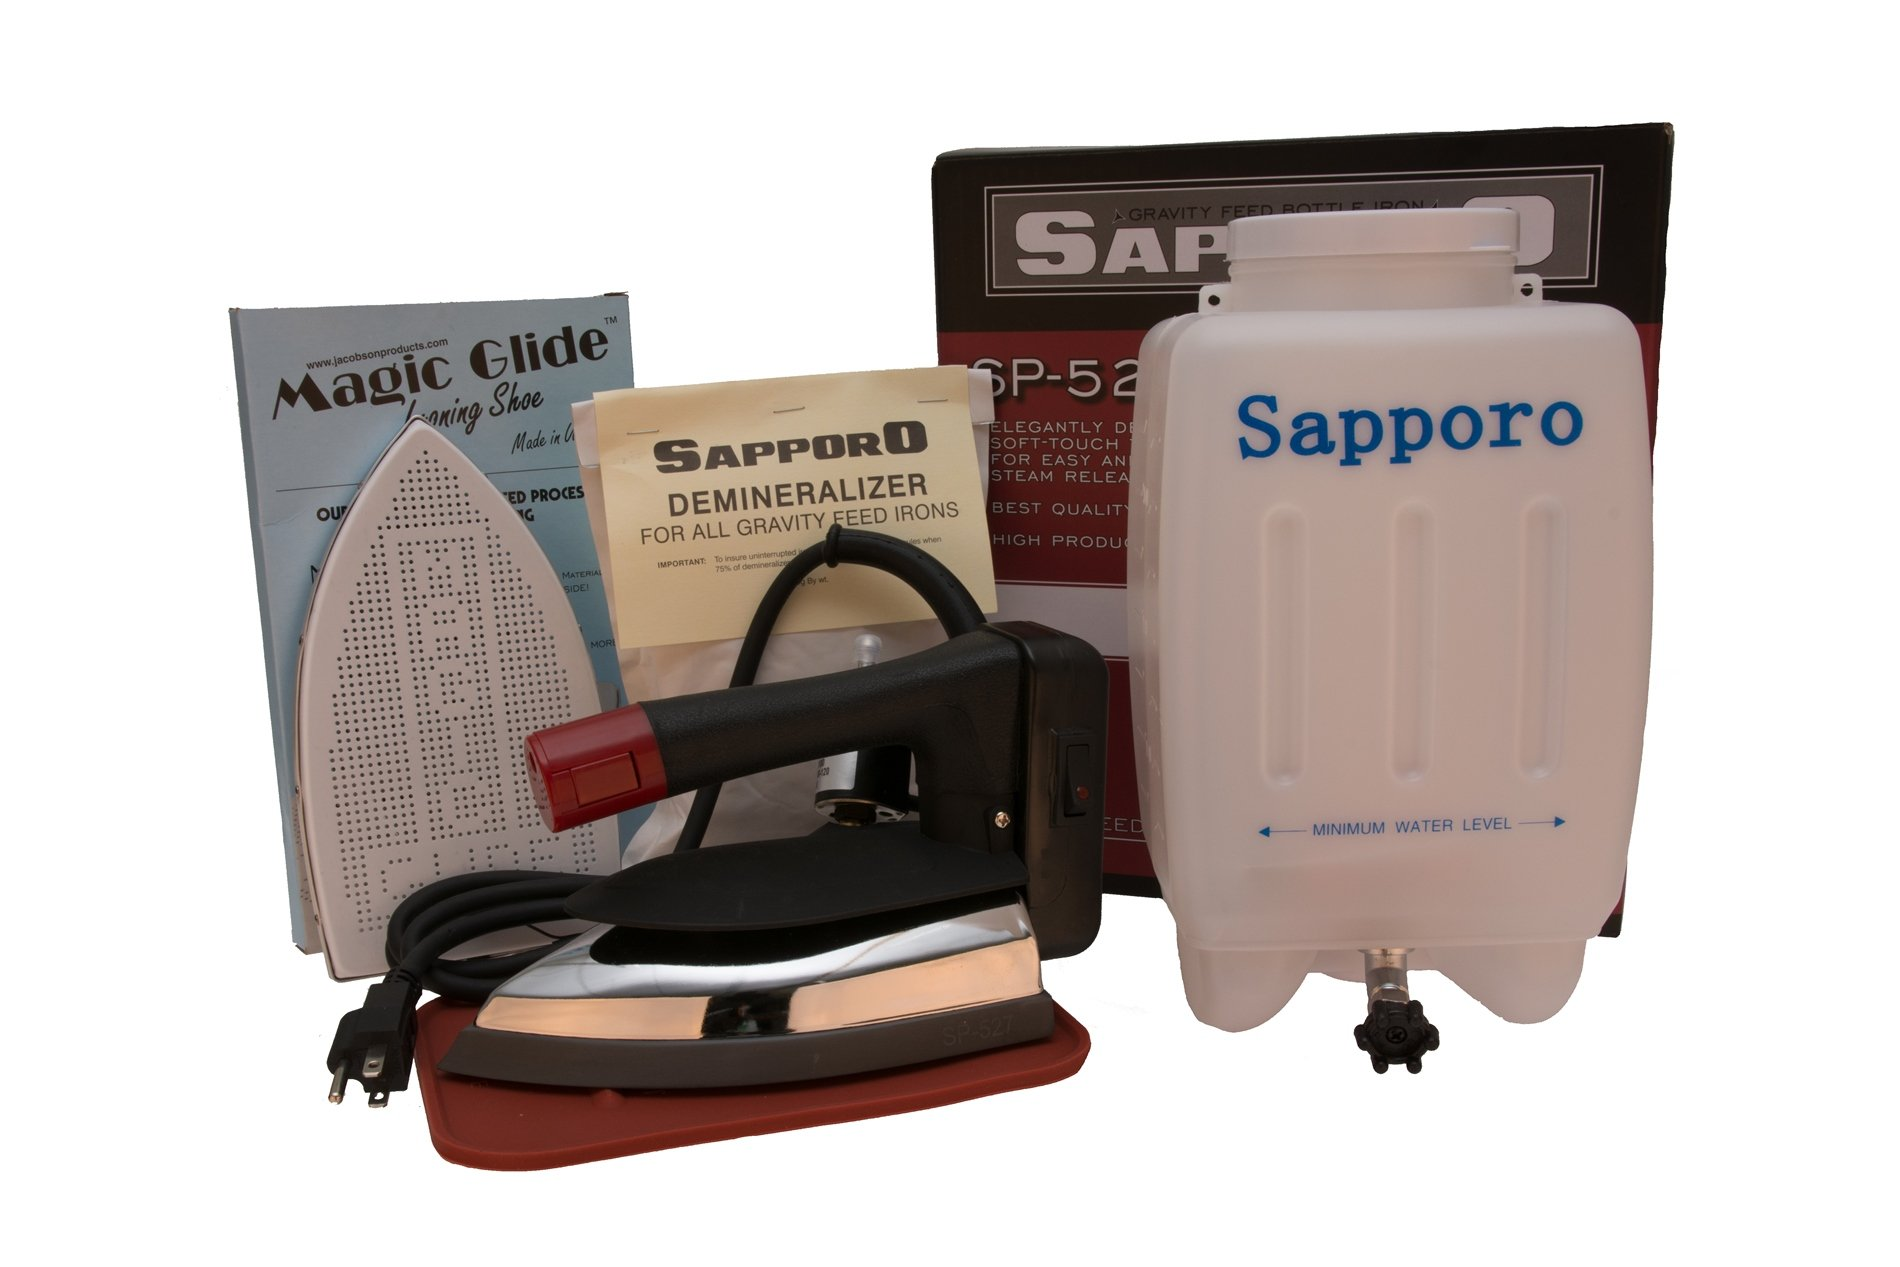 Sapporo SP527/SP-527 Gravity Feed Bottle Steam Ironing System with Demineralizer and Magic Glide Shoe by Sapporo/Jacobson